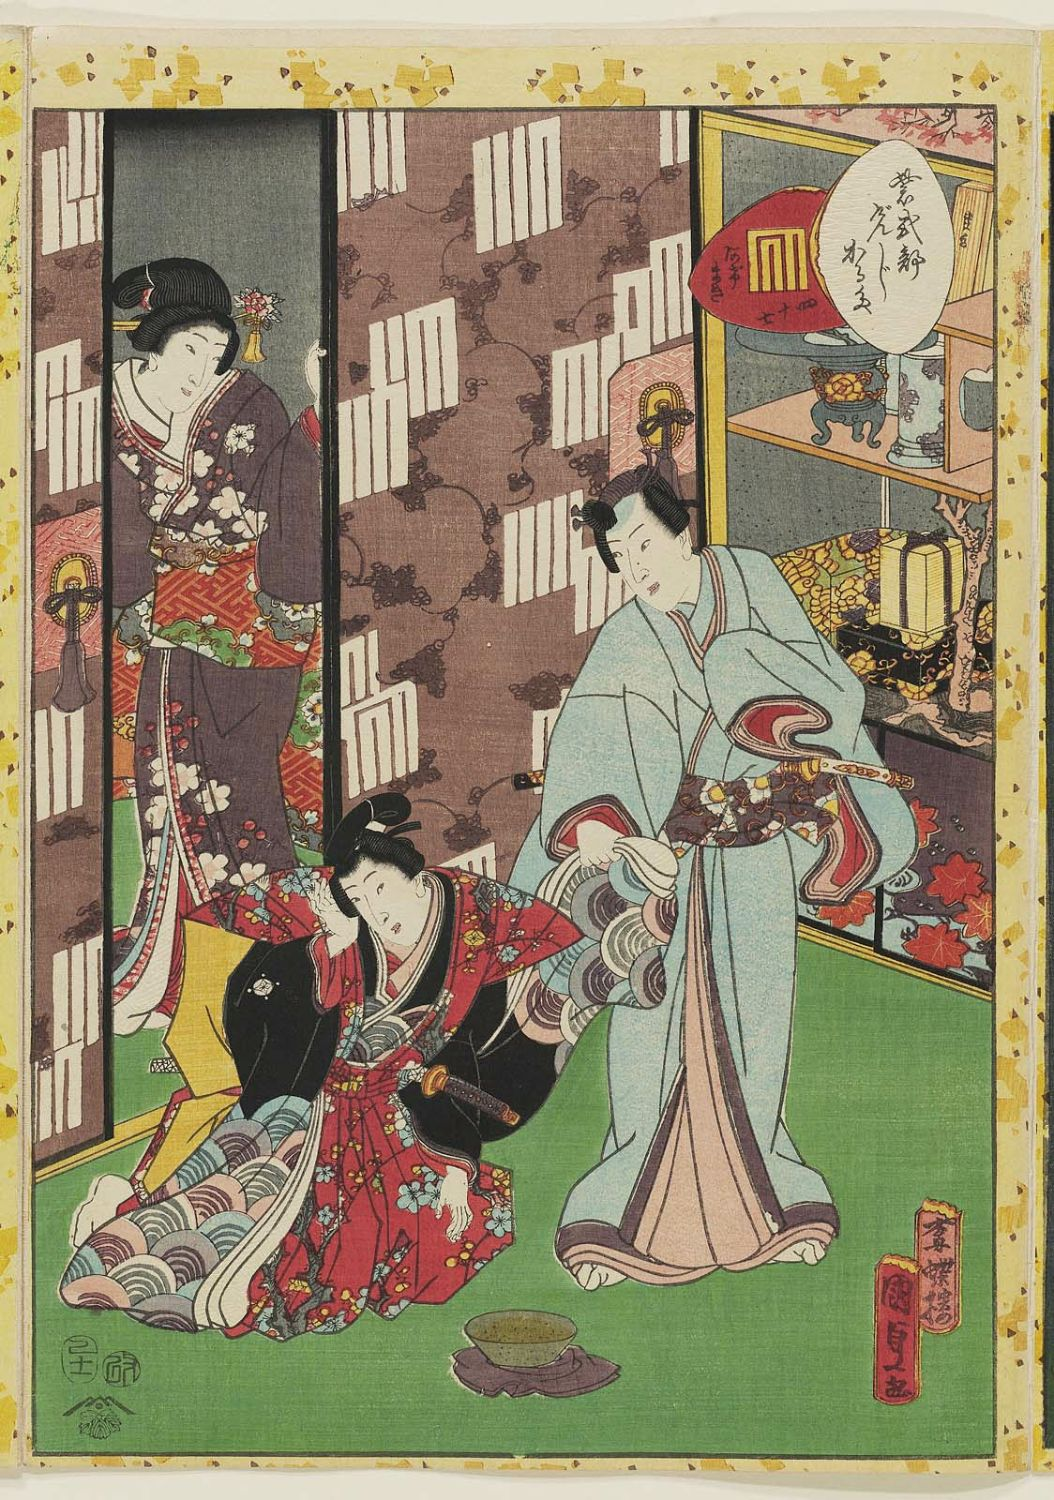 the significance of the diary of lady murasaki in history The diary of lady murasaki (紫式部日記 murasaki shikibu nikki) is the title of fragments of a diary written by the 11th-century japanese heian era lady-in-waiting and writer murasaki shikibu, author of the tale of genji.